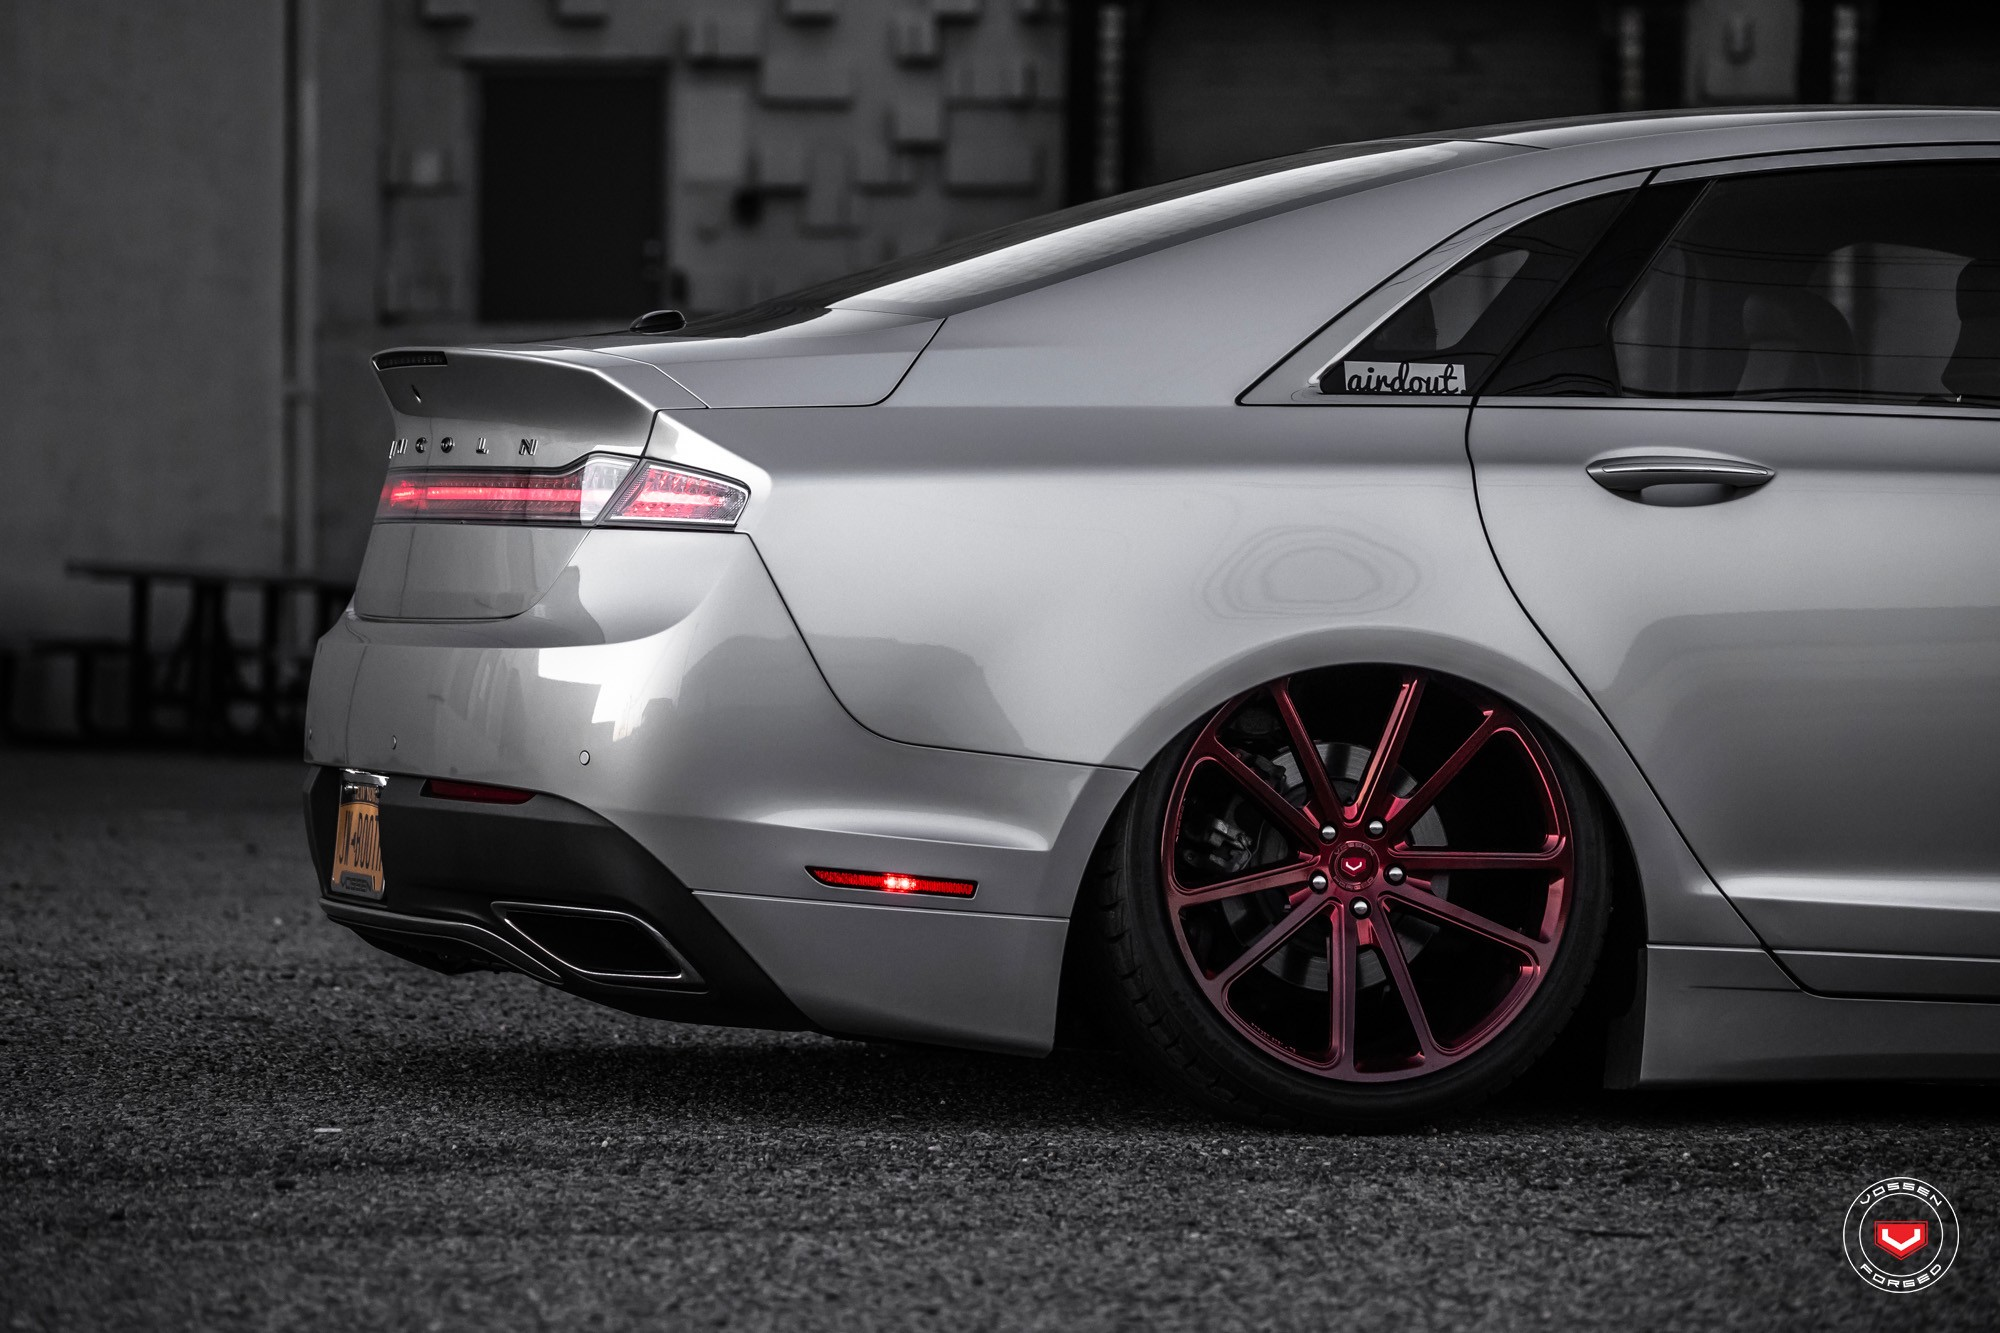 Lincoln Tuning Mkz Lowered On Vossen Wheels